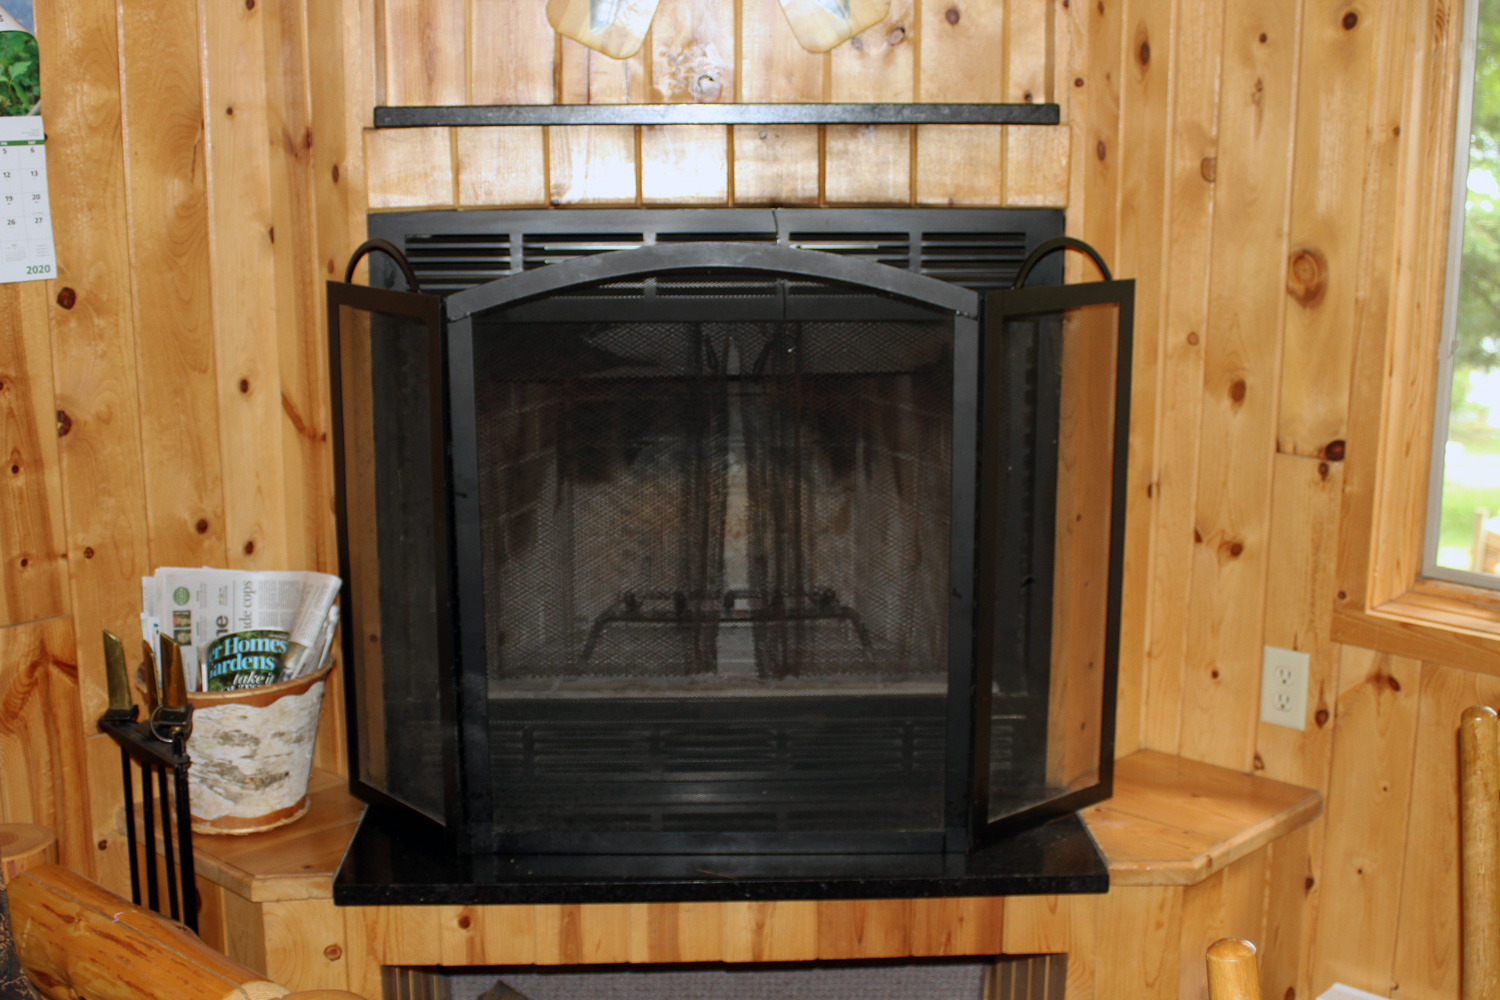 Fireplace for those chilly spring & fall evenings